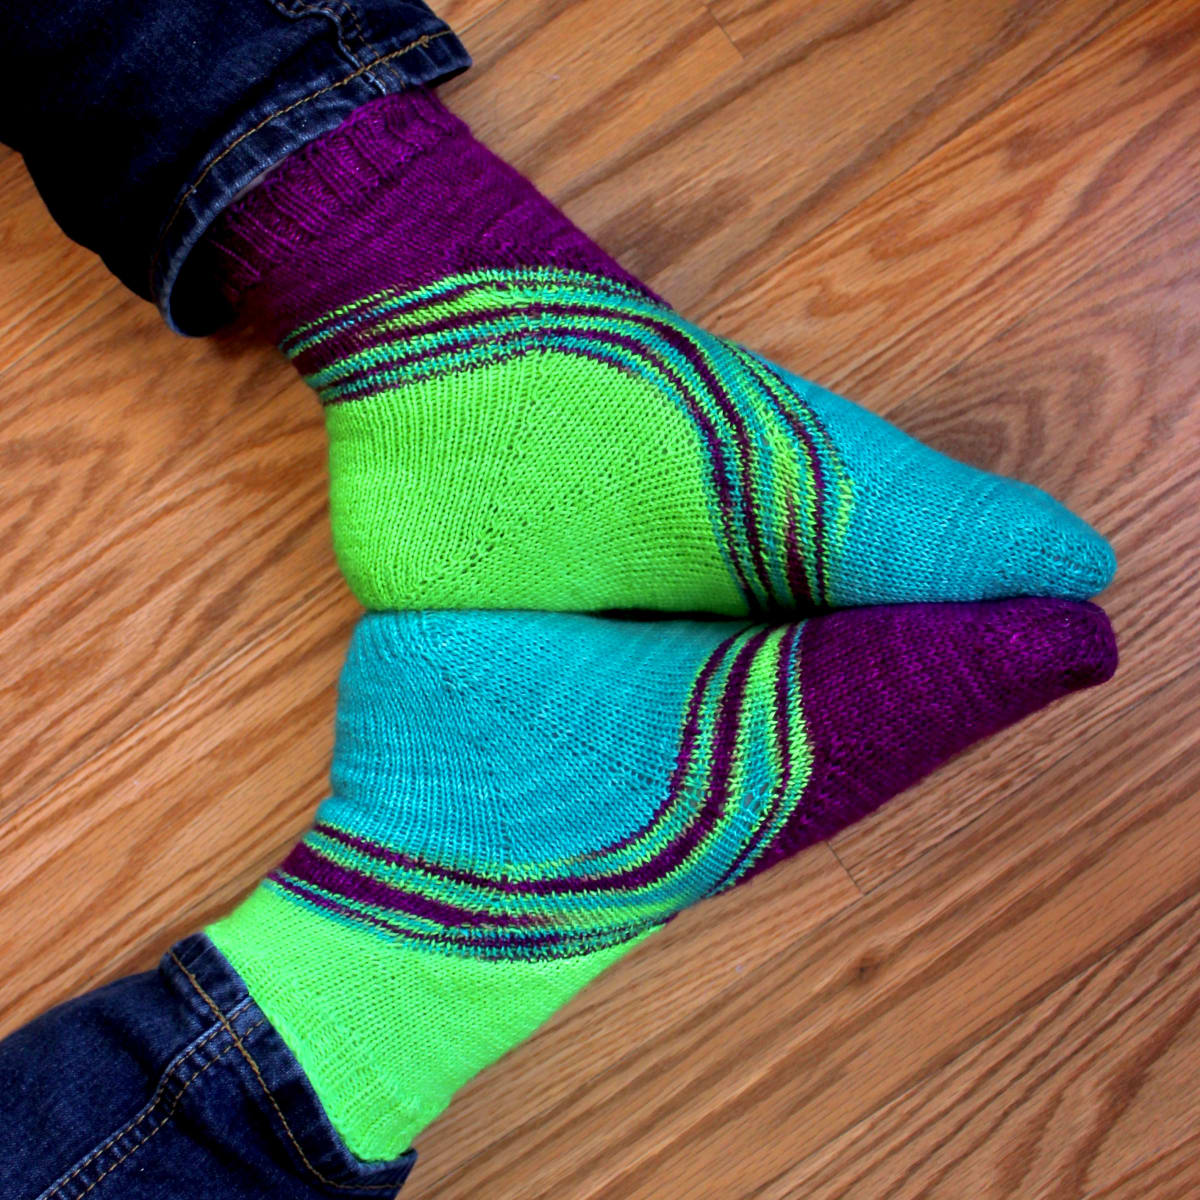 Feet lying sole-to-sole wearing bright green, blue, and purple socks with a multicoloured stripe between the colours.